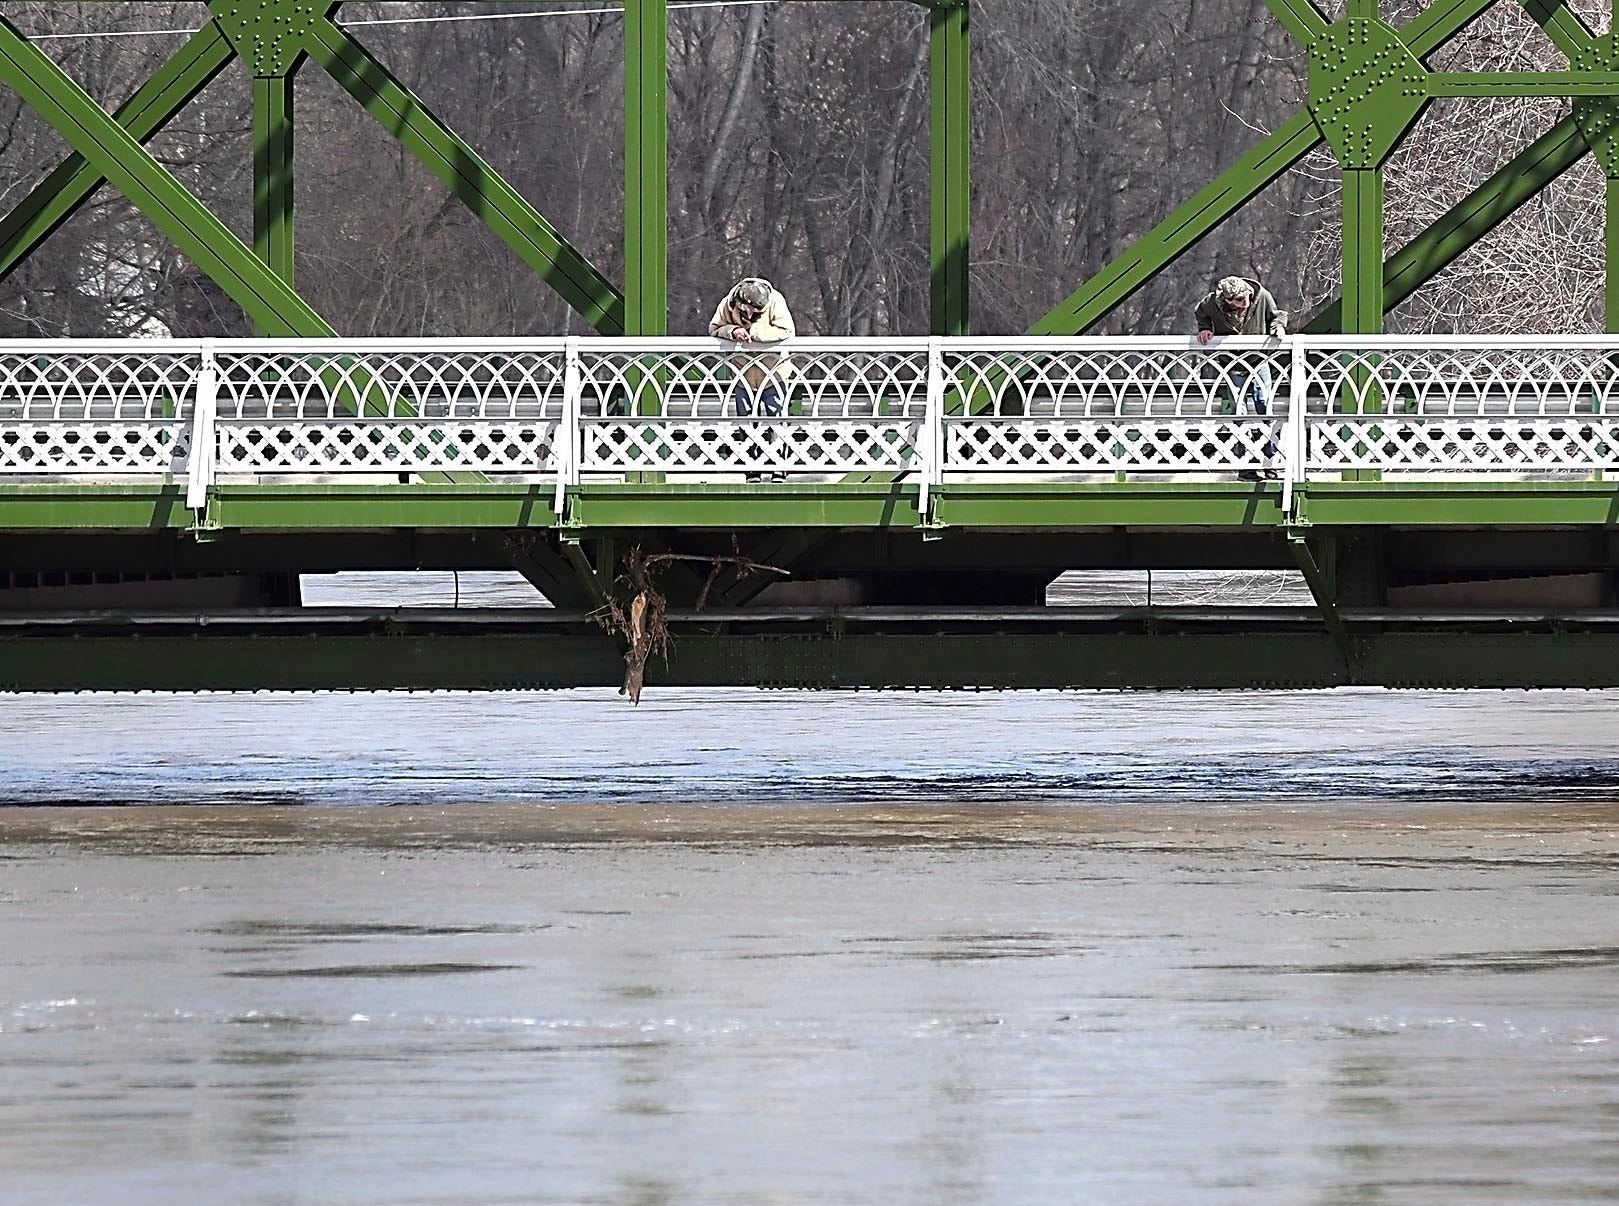 Two men look at a raging Minnesota River beneath the Highway 99 bridge Wednesday, March 20, 2019 in St. Peter. High water is threatening to close the bridge.